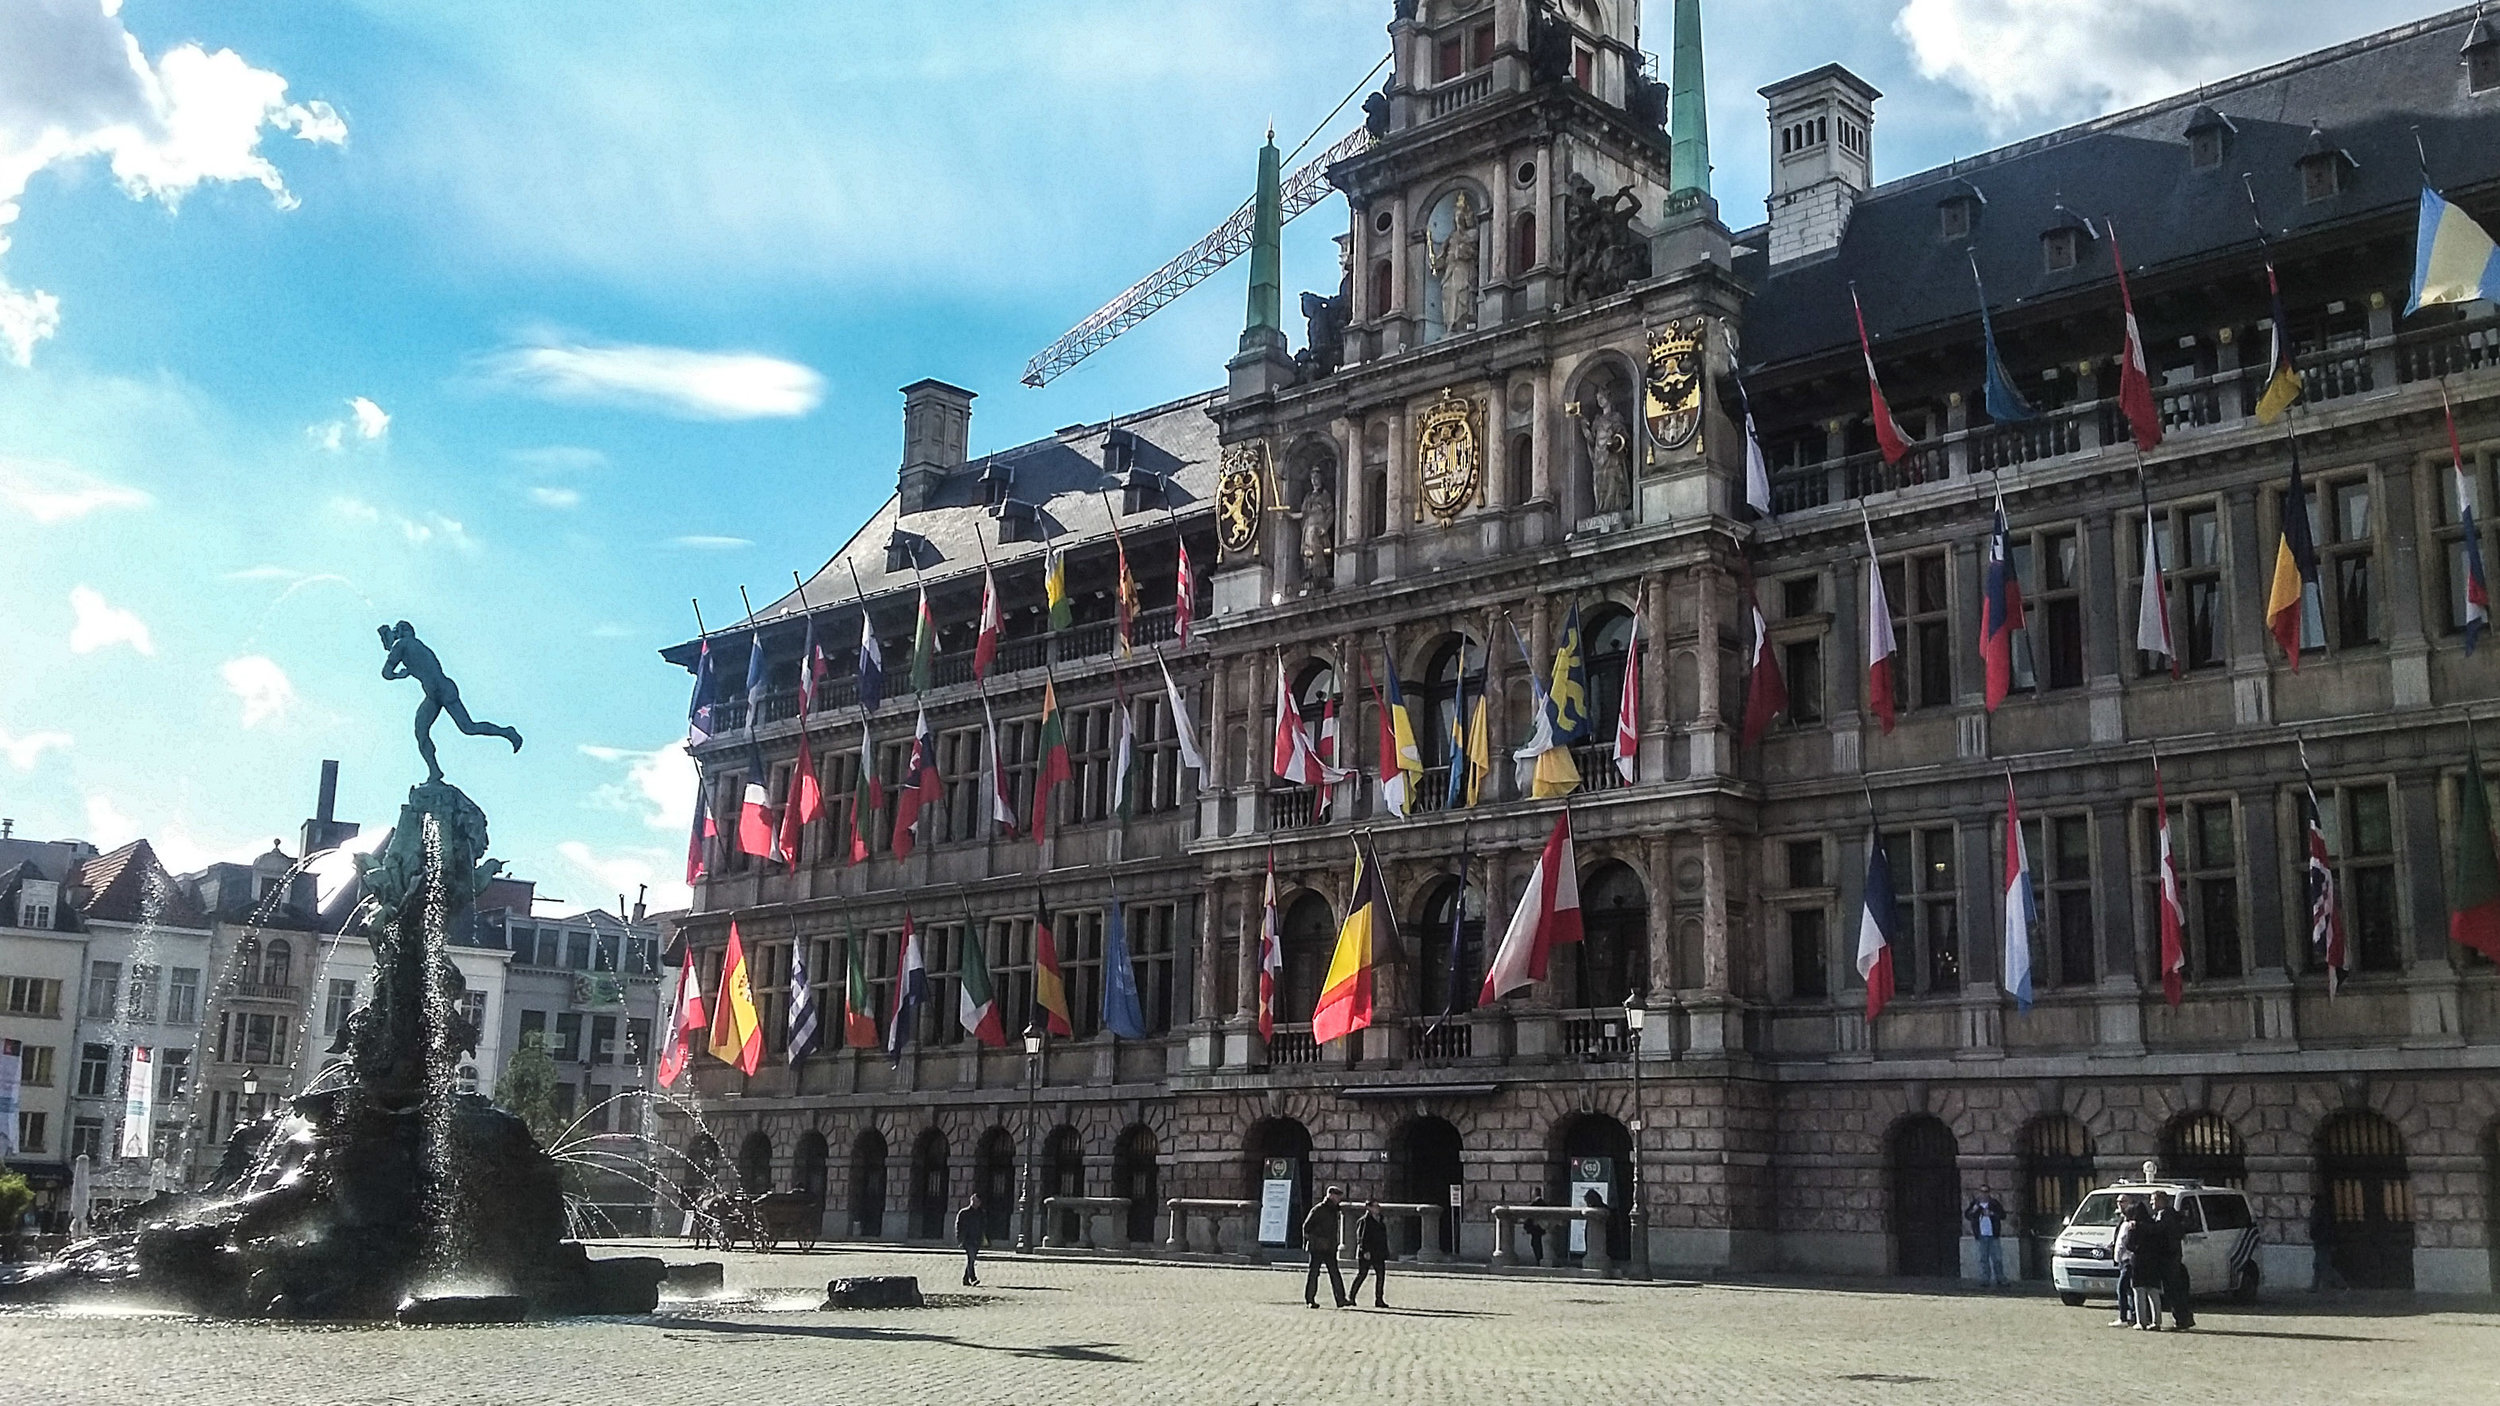 """Antwerpen means """"To Throw a Hand,"""" which stems from a local legend and this statue (he's literally throwing his hand)"""